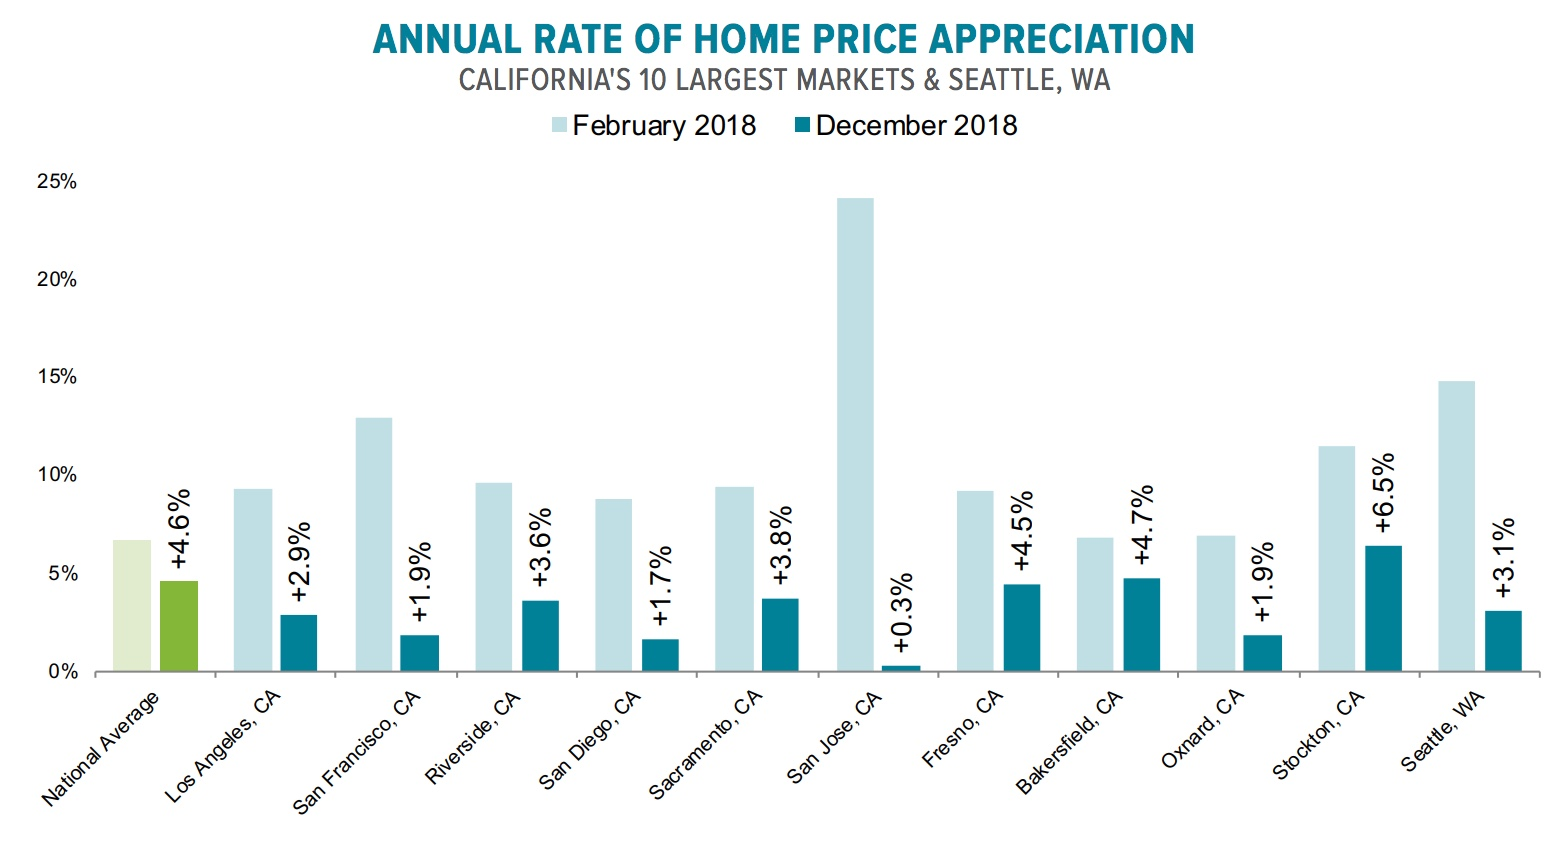 home-rate-appreciation.wavewallet.co.vory.co.jpg